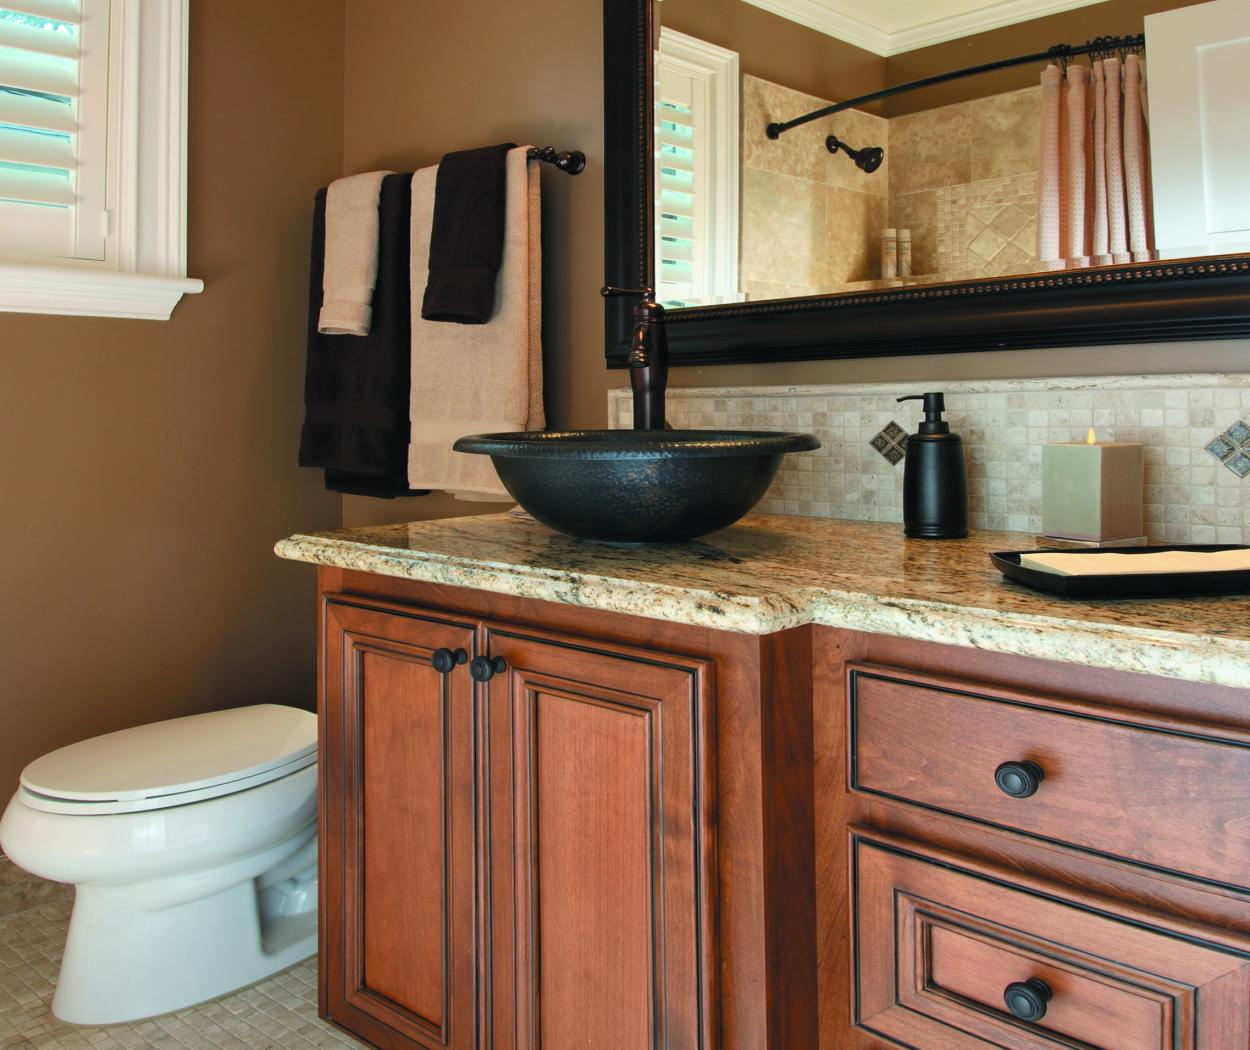 Transitional Bathroom Vanity with a Beautiful Granite Countertop and Oil Rubbed Bronze Hardware